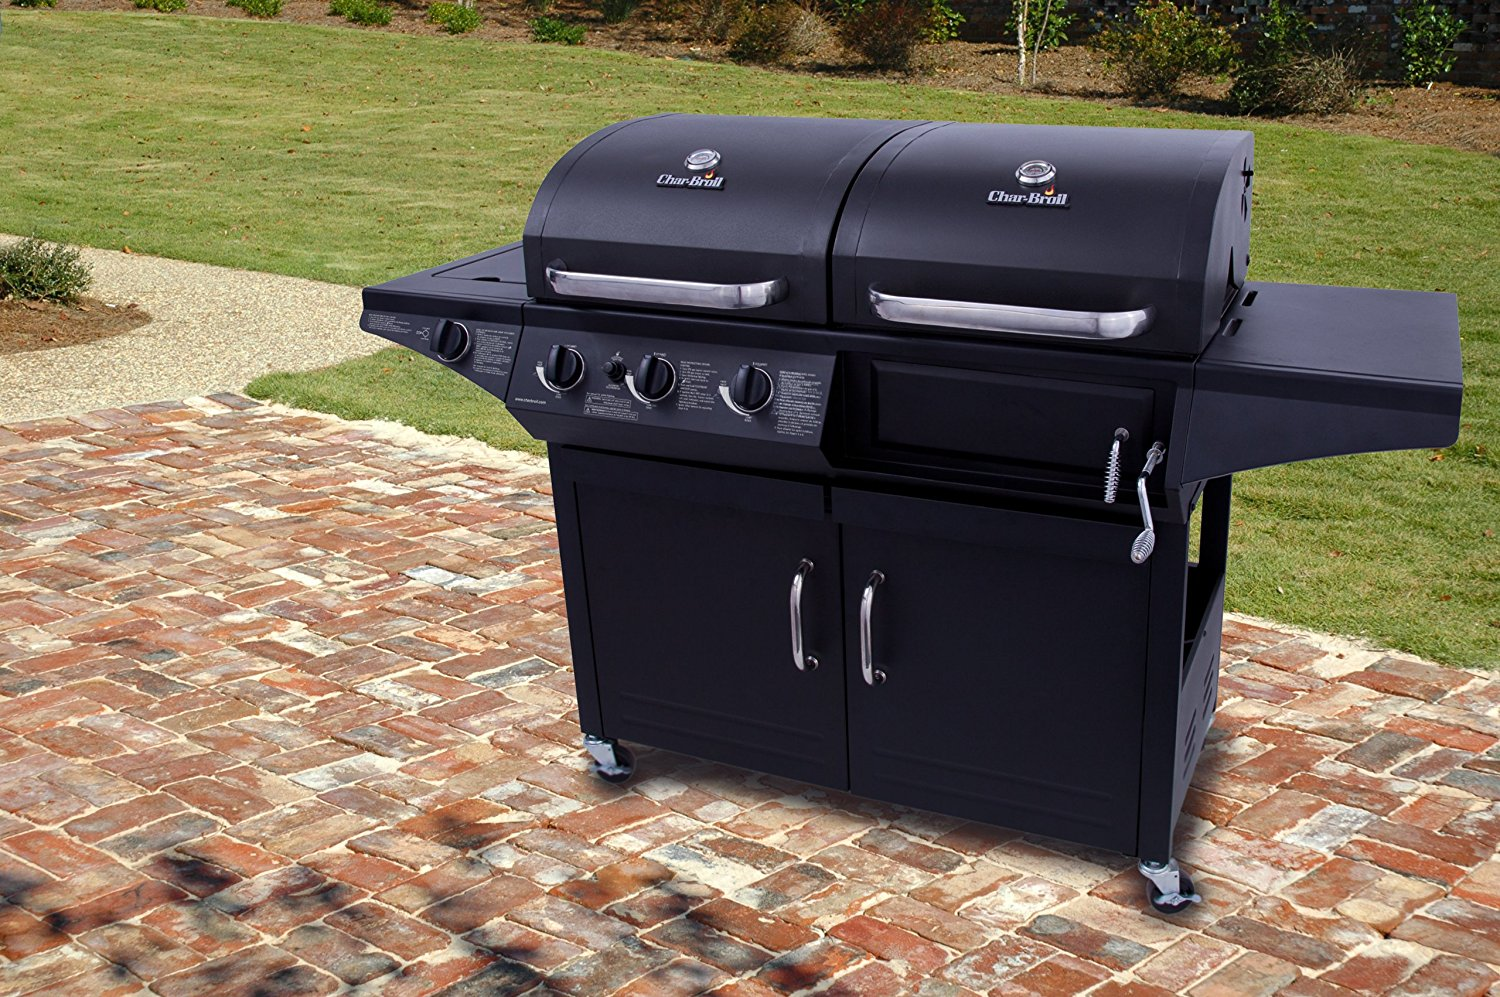 Details About New Charbroil Deluxe 1010 3 Burner Liquid Propane And Charcoal Combo Grill